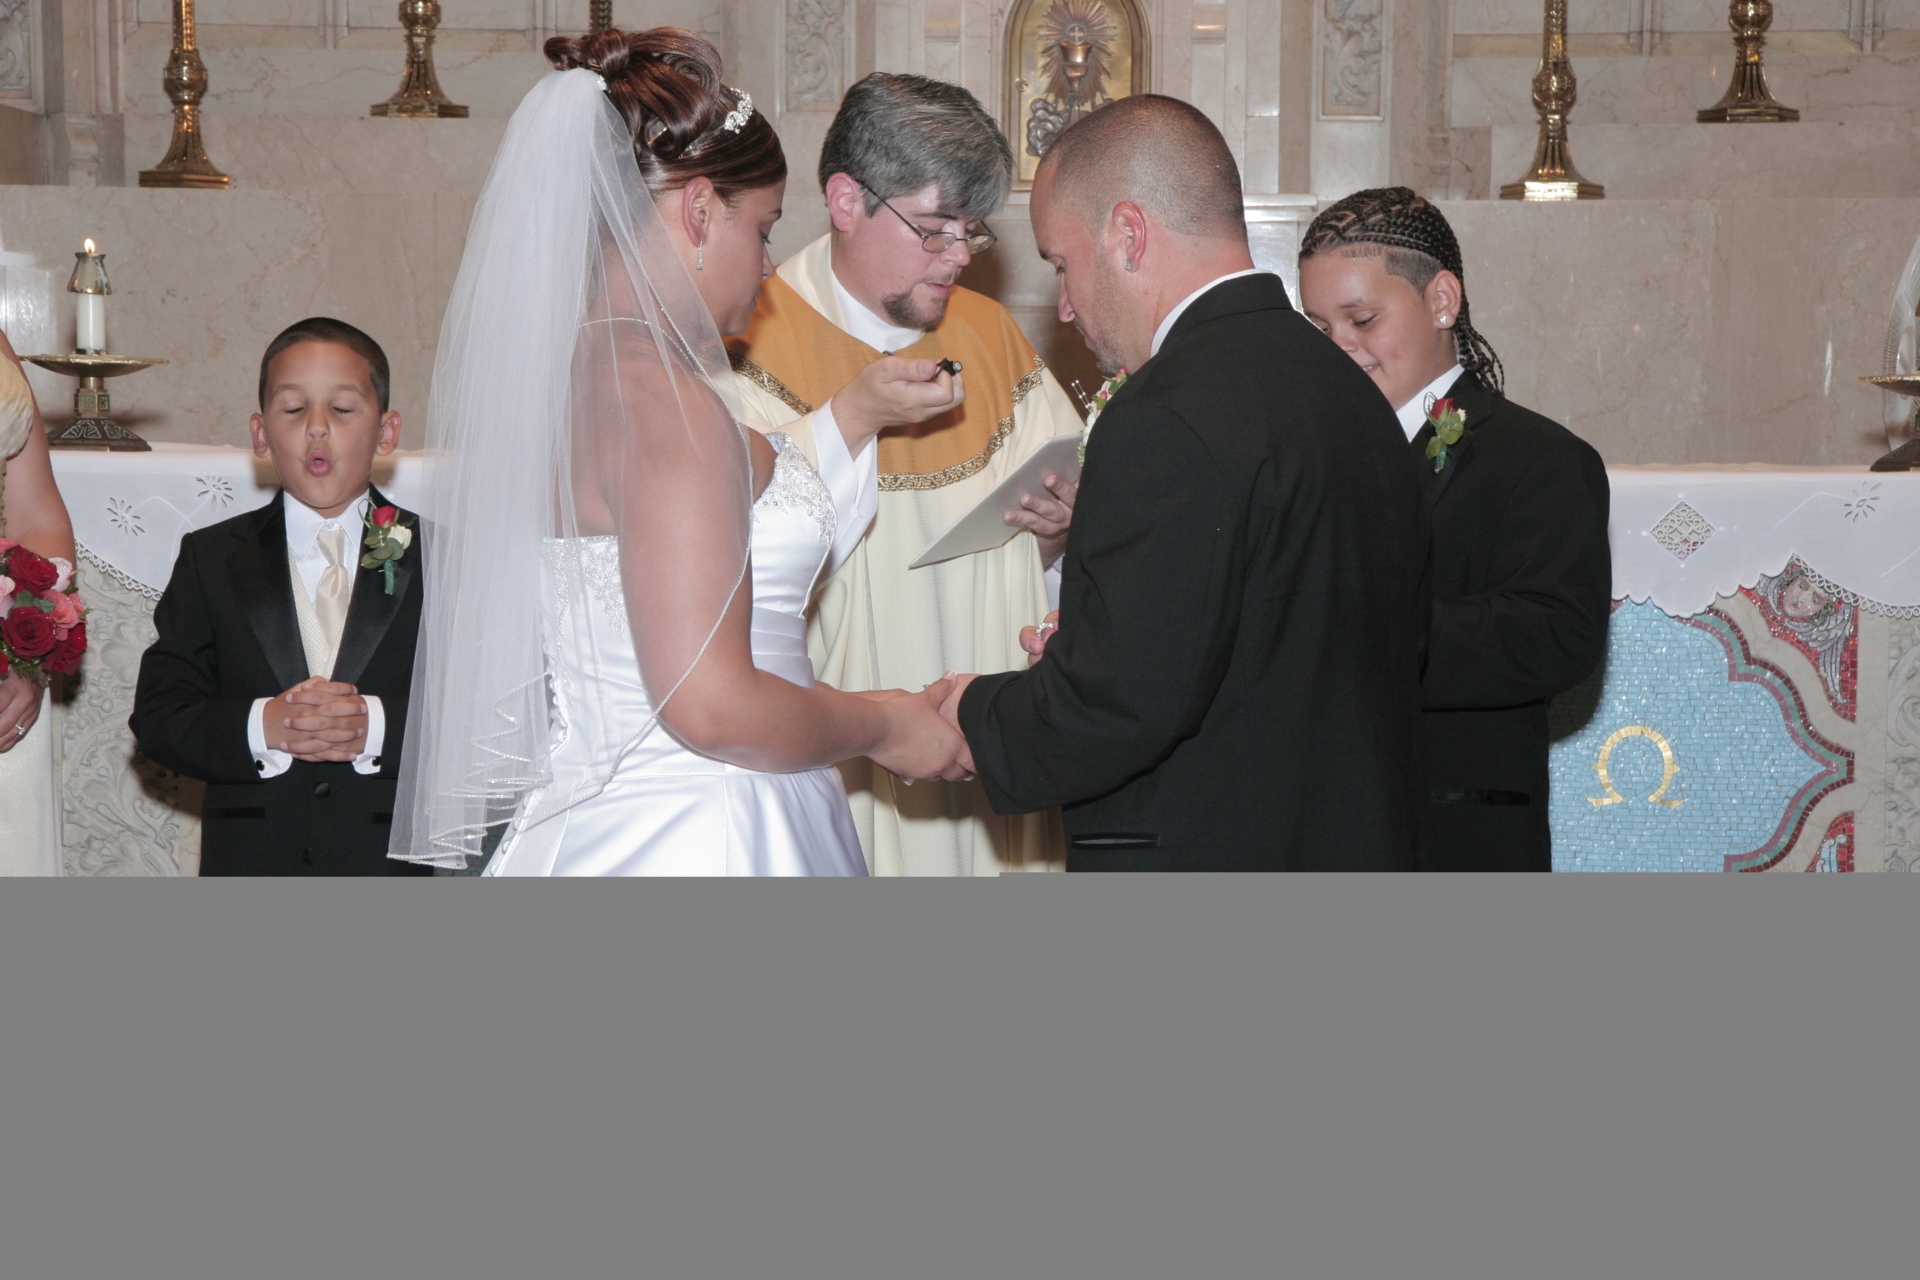 Knowing how to hire the best wedding officiant for your big day is crucial!